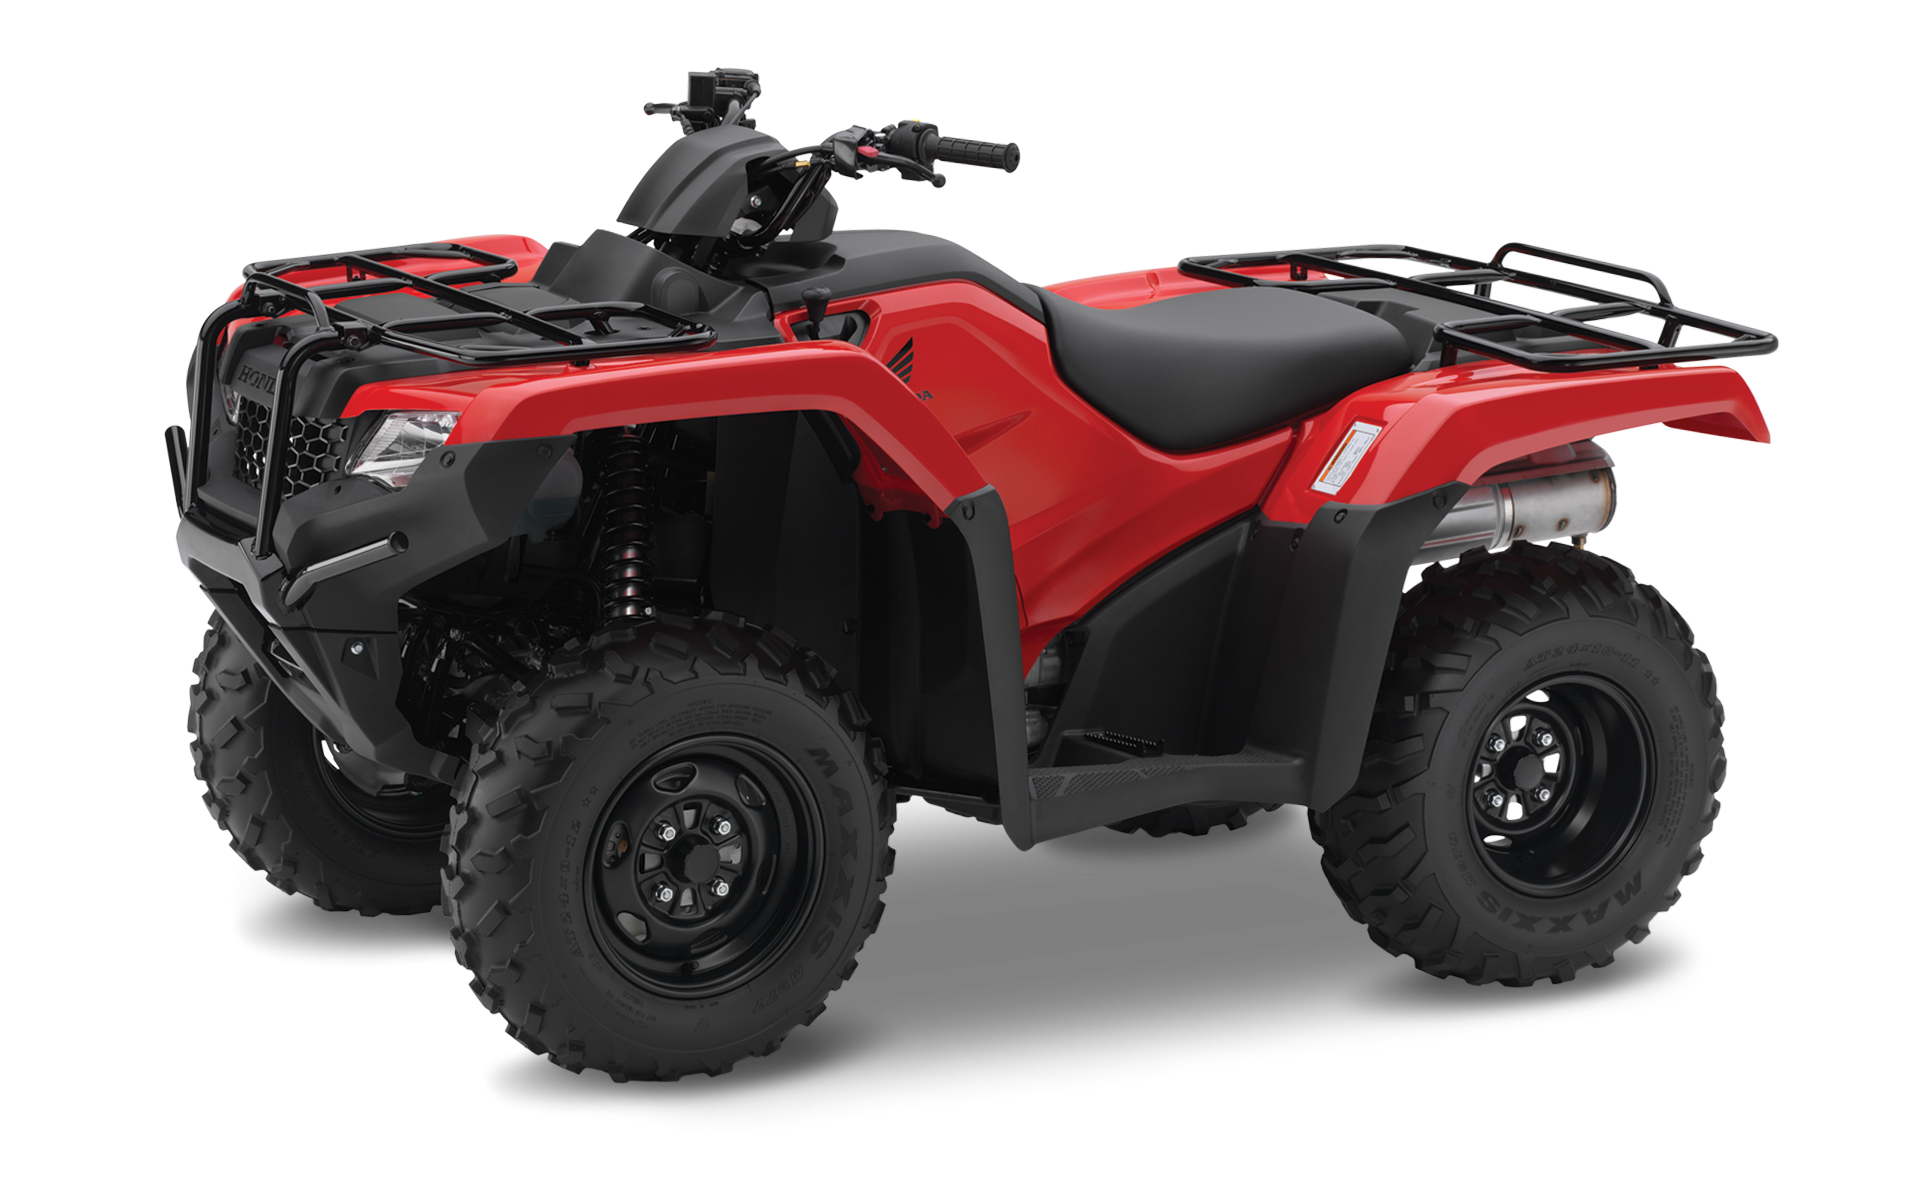 Red TRX420 EPS